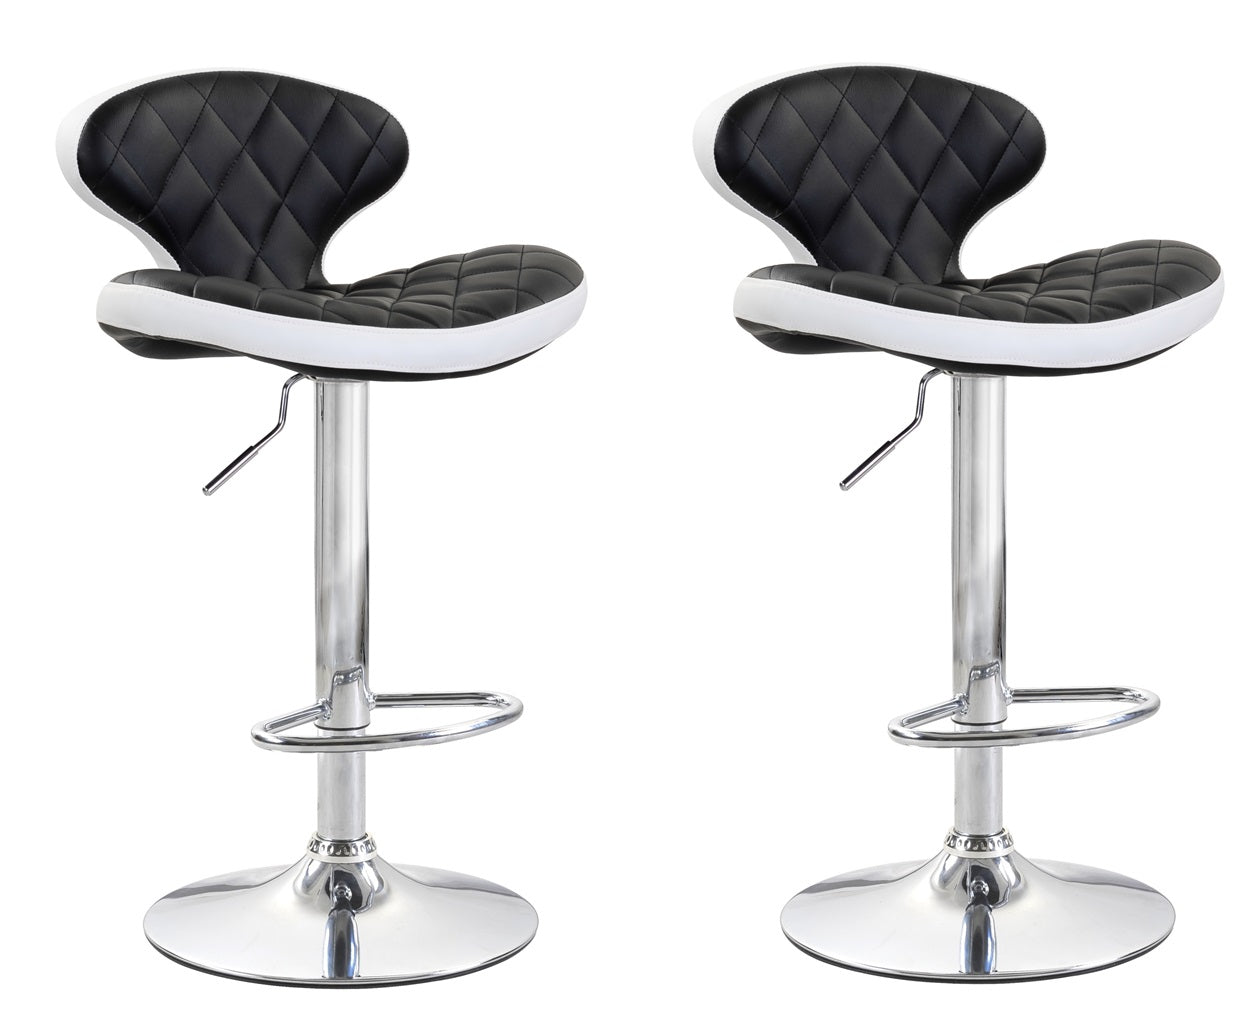 ViscoLogic MYSTIQUE Adjustable Height Swivel Bar Stools Saddle Style (Set of 2 Stools)